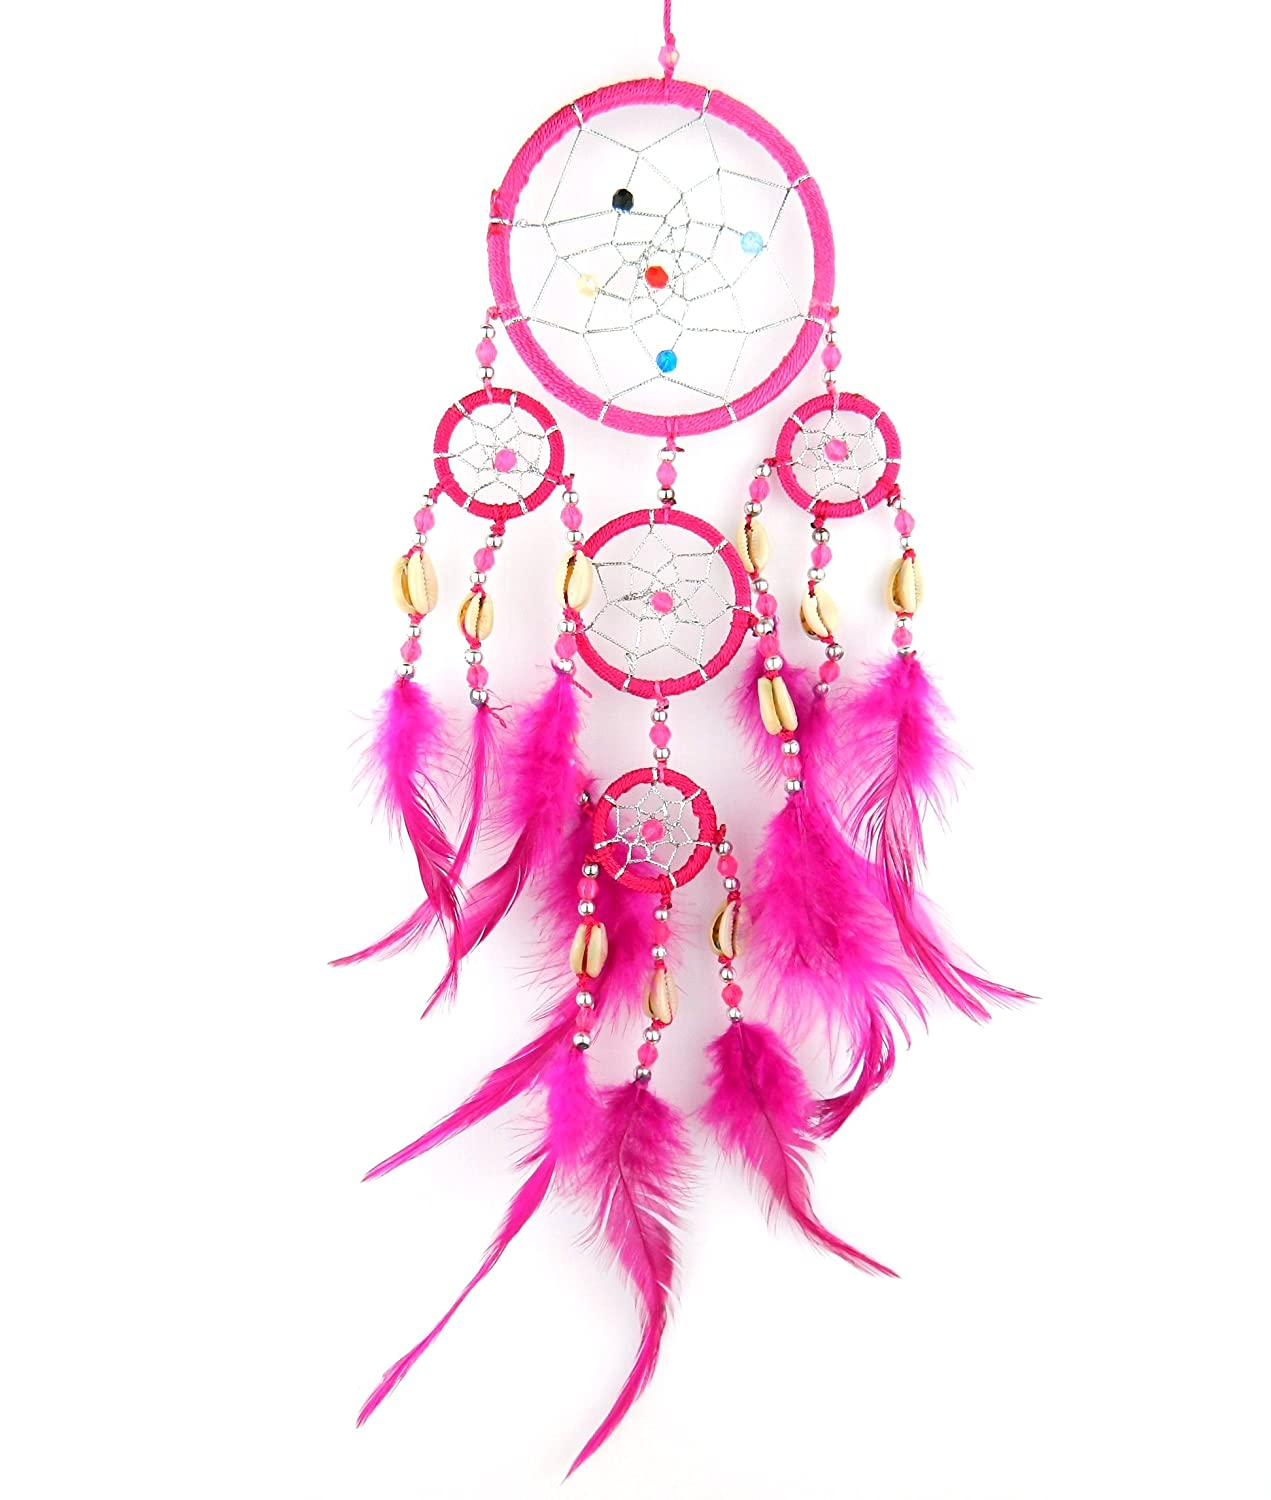 BRILLIANT GIFTS PINK DREAM CATCHER dreamcatcher for girls bedroom